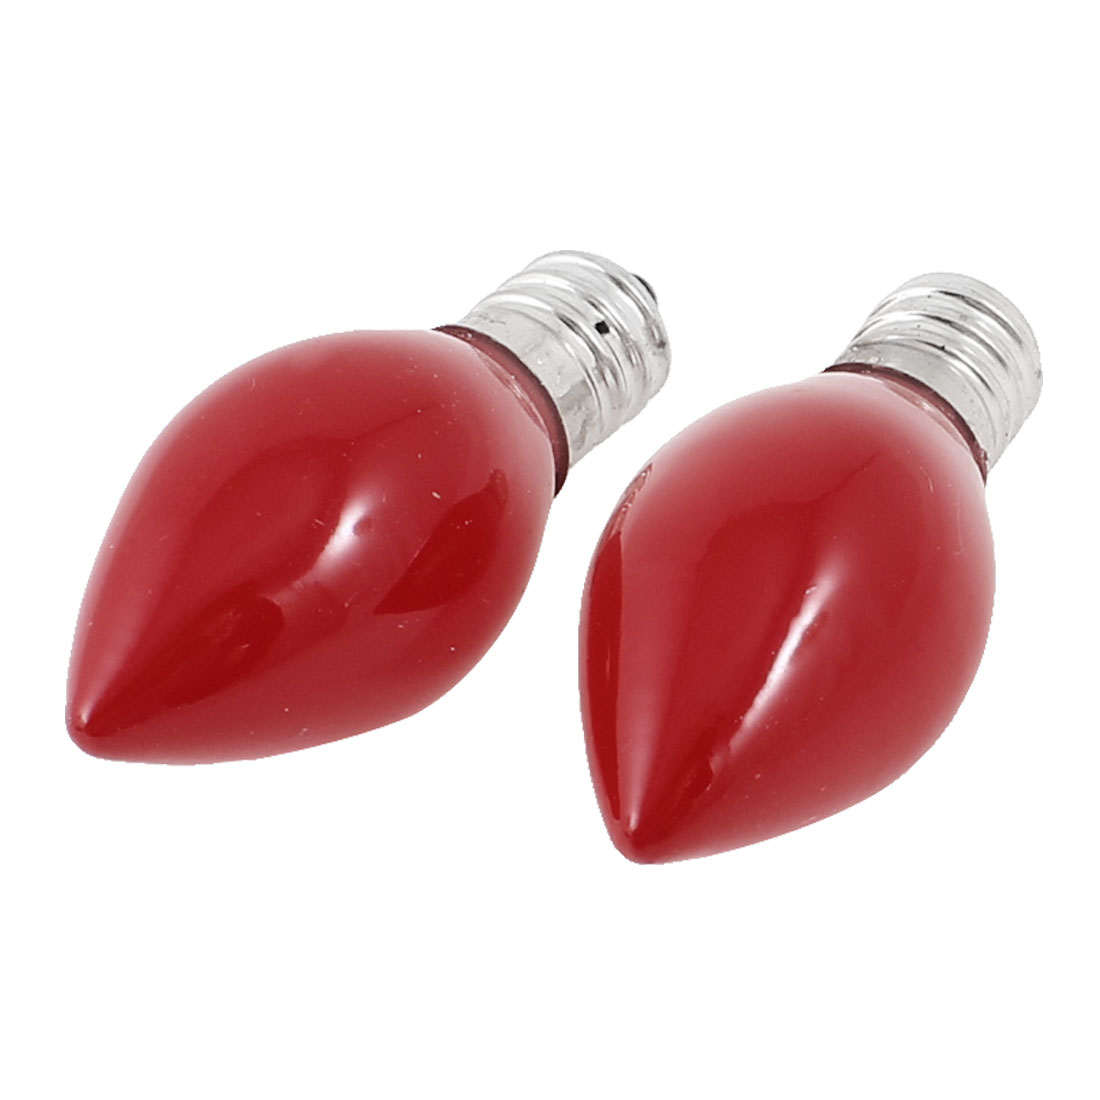 2 Pcs AC 220-240V 7W E12 Socket Base Energy Saving LED Red Candle Light Bulb Lamp